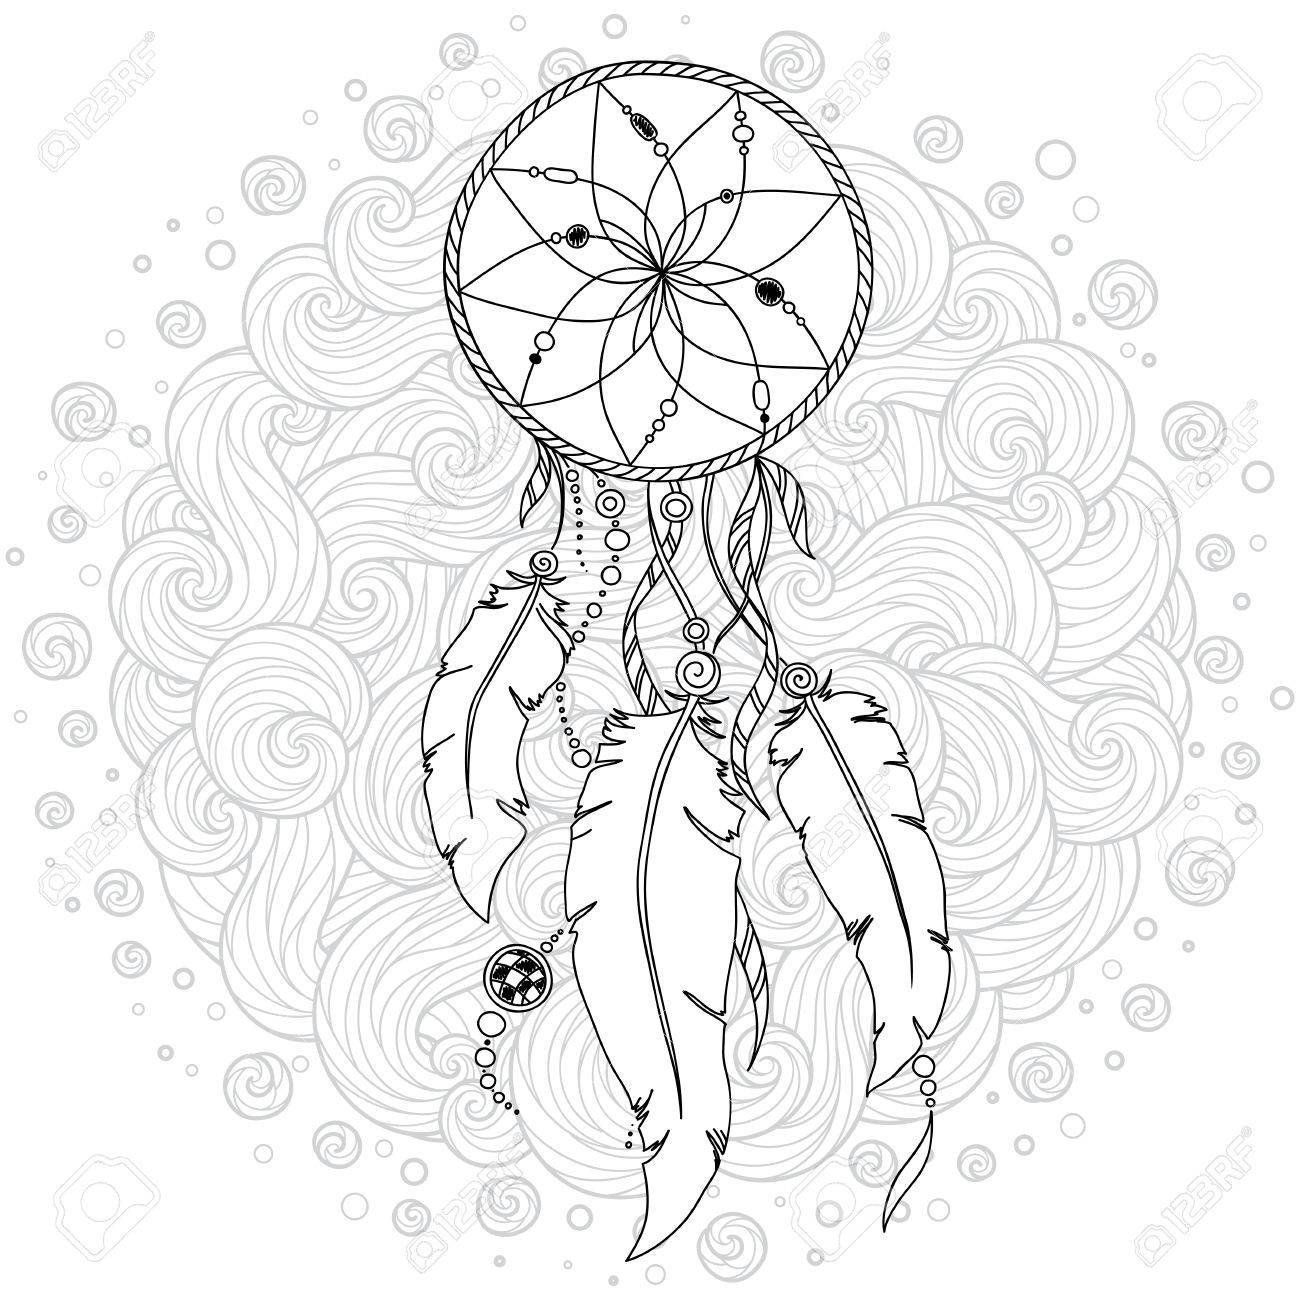 Monochrome Dream Catcher with feathers. Hand drawn vector illustration in doodle style. Sketch for tattoo, t-shirt design, post card. Boho style - 84433634